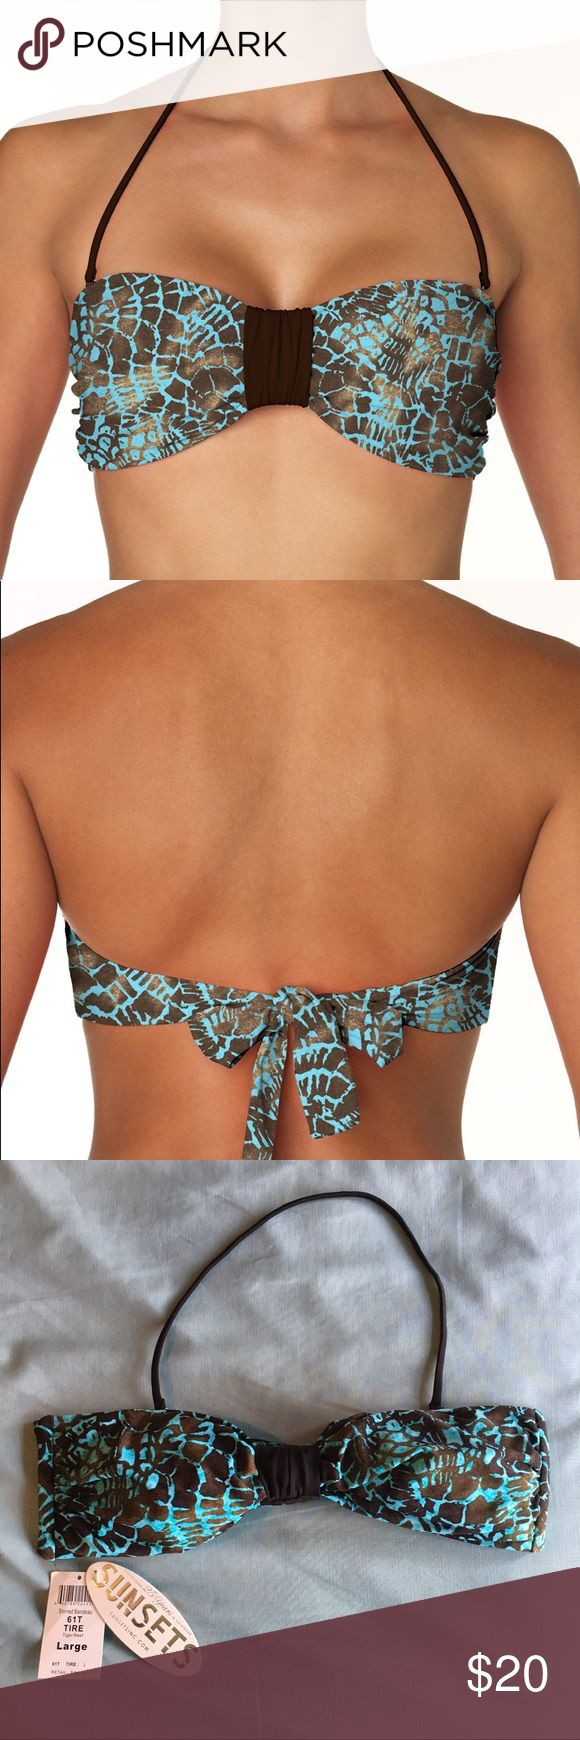 NWT Sunsets Bandeau Top Gorgeous bandeau top from Sunsets Inc in Tiger Reef pattern! Brand new, never worn with tags still attached! Colors are turquoise and brown and size is large! I have added some stock photos and a sizing chart! :) Sunsets Swim Bikinis